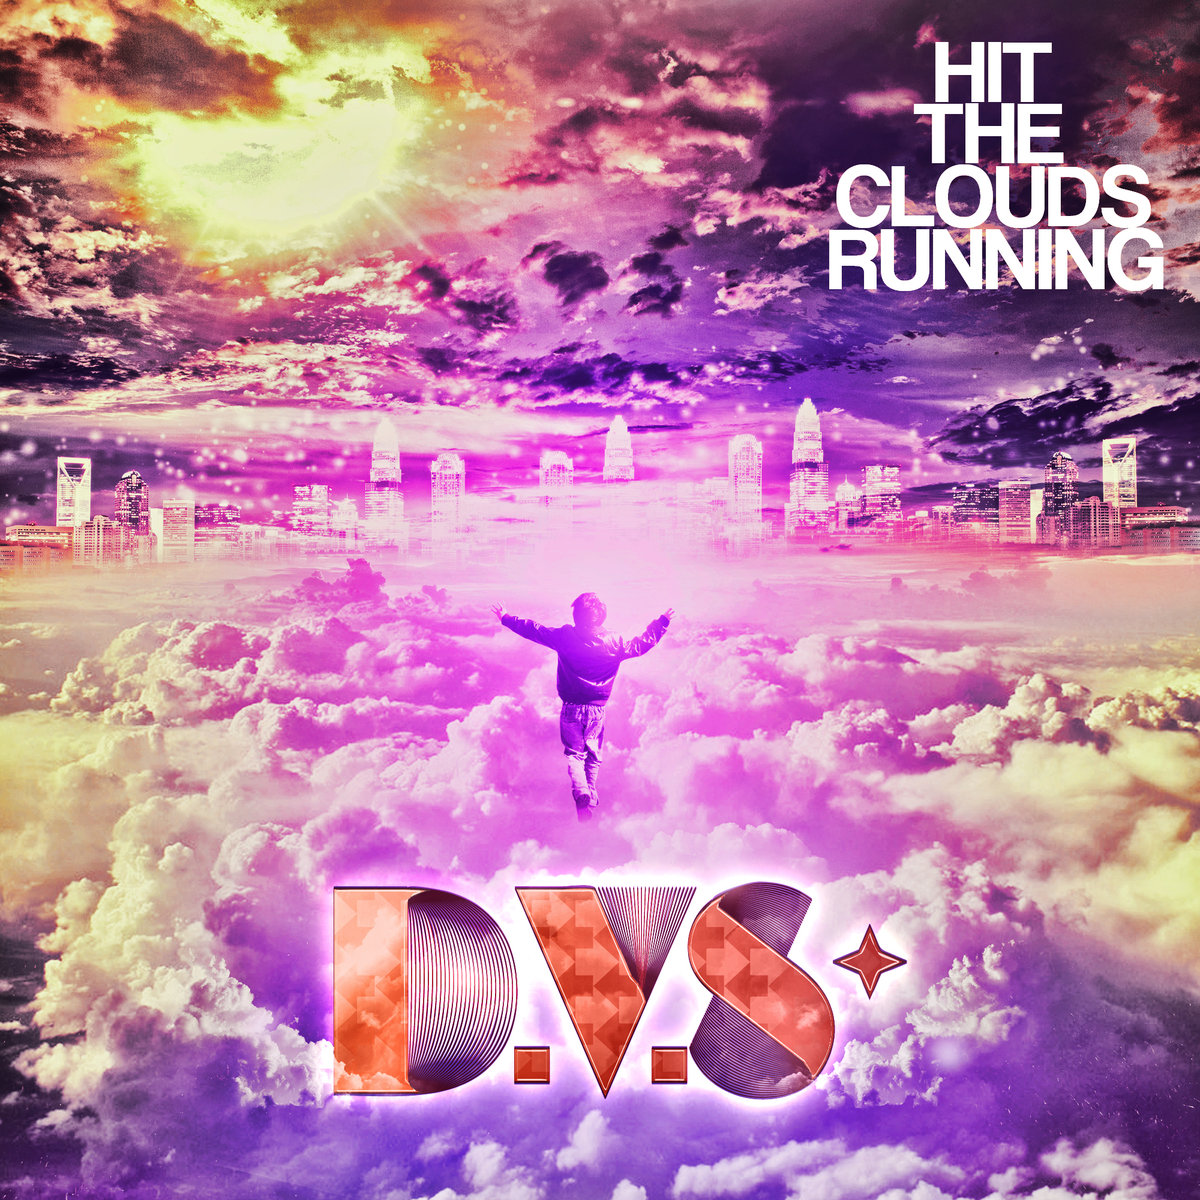 D.V.S* - Heartmaps @ 'Hit The Clouds Running' album (electronica, guitar)